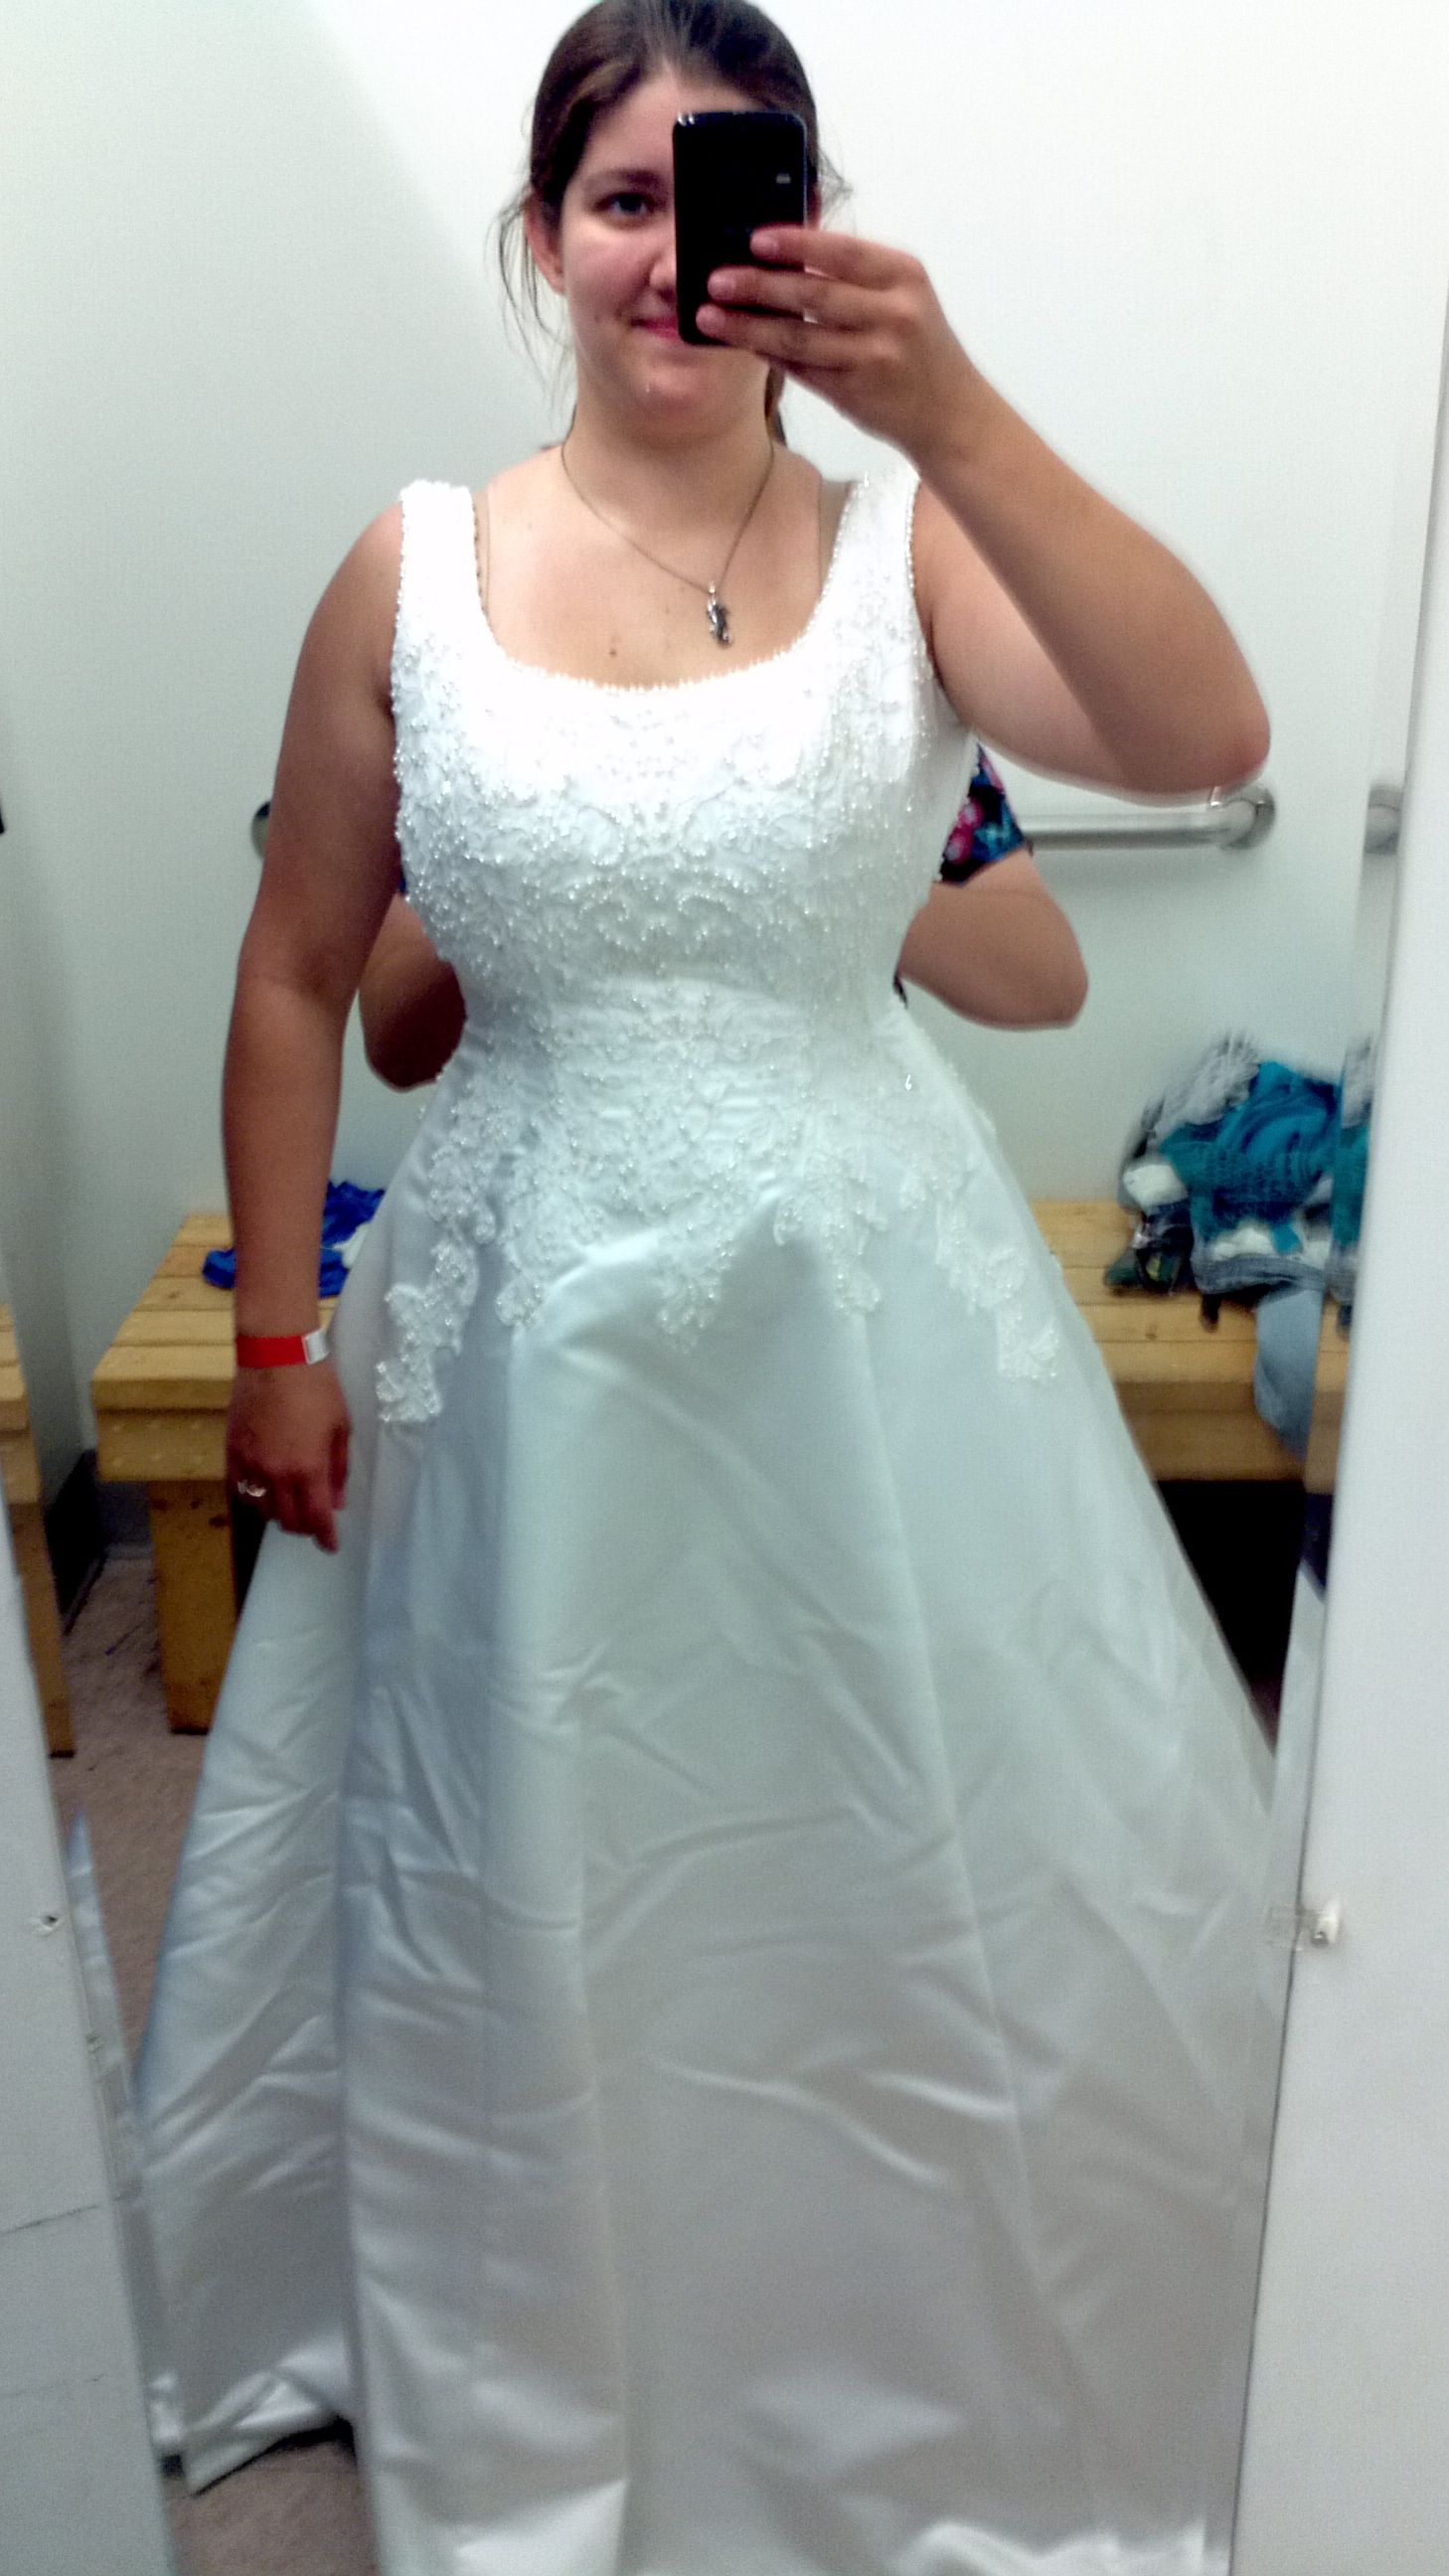 My dress!!!! $50 at Goodwill!! Find yours! http://mokangoodwill.org ...